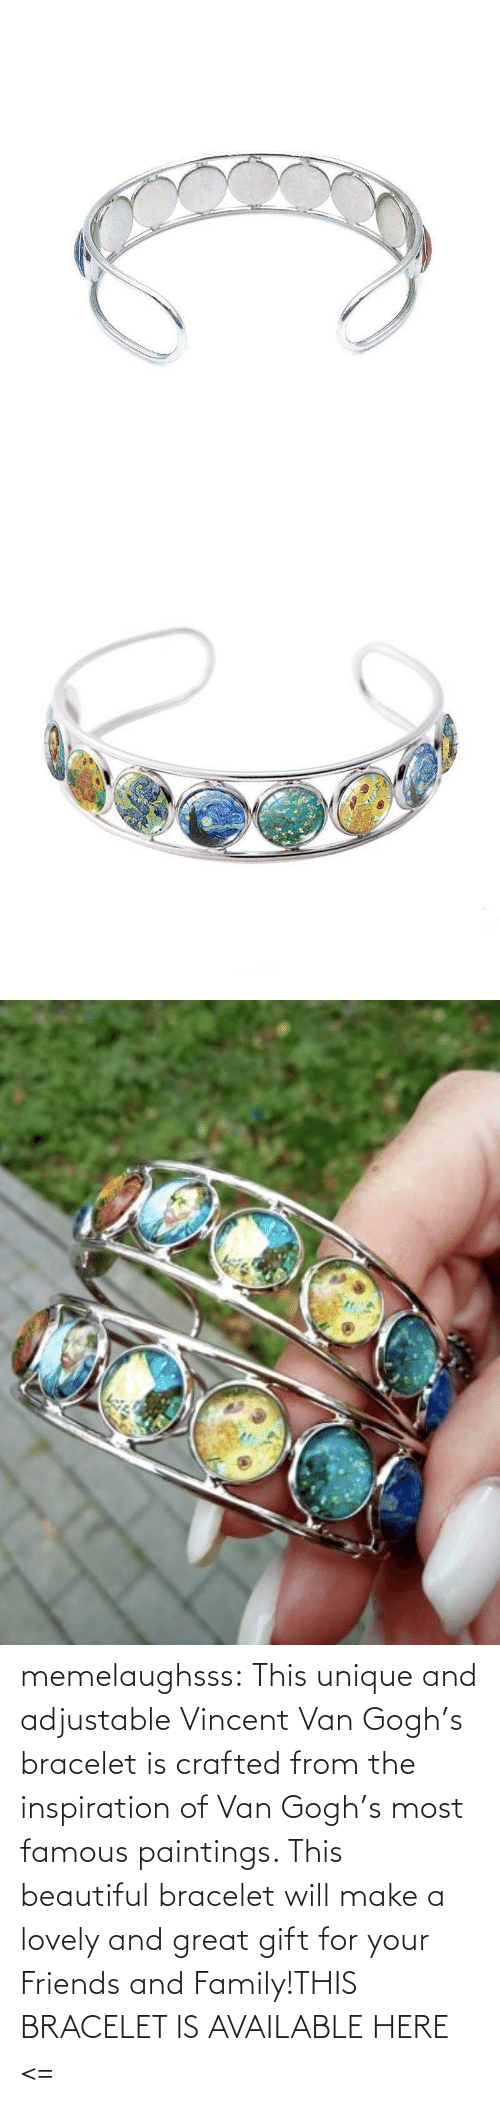 beautiful: memelaughsss:  This unique and adjustable Vincent Van Gogh's bracelet is crafted from the inspiration of Van Gogh's most famous paintings. This beautiful bracelet will make a lovely and great gift for your Friends and Family!THIS BRACELET IS AVAILABLE HERE <=